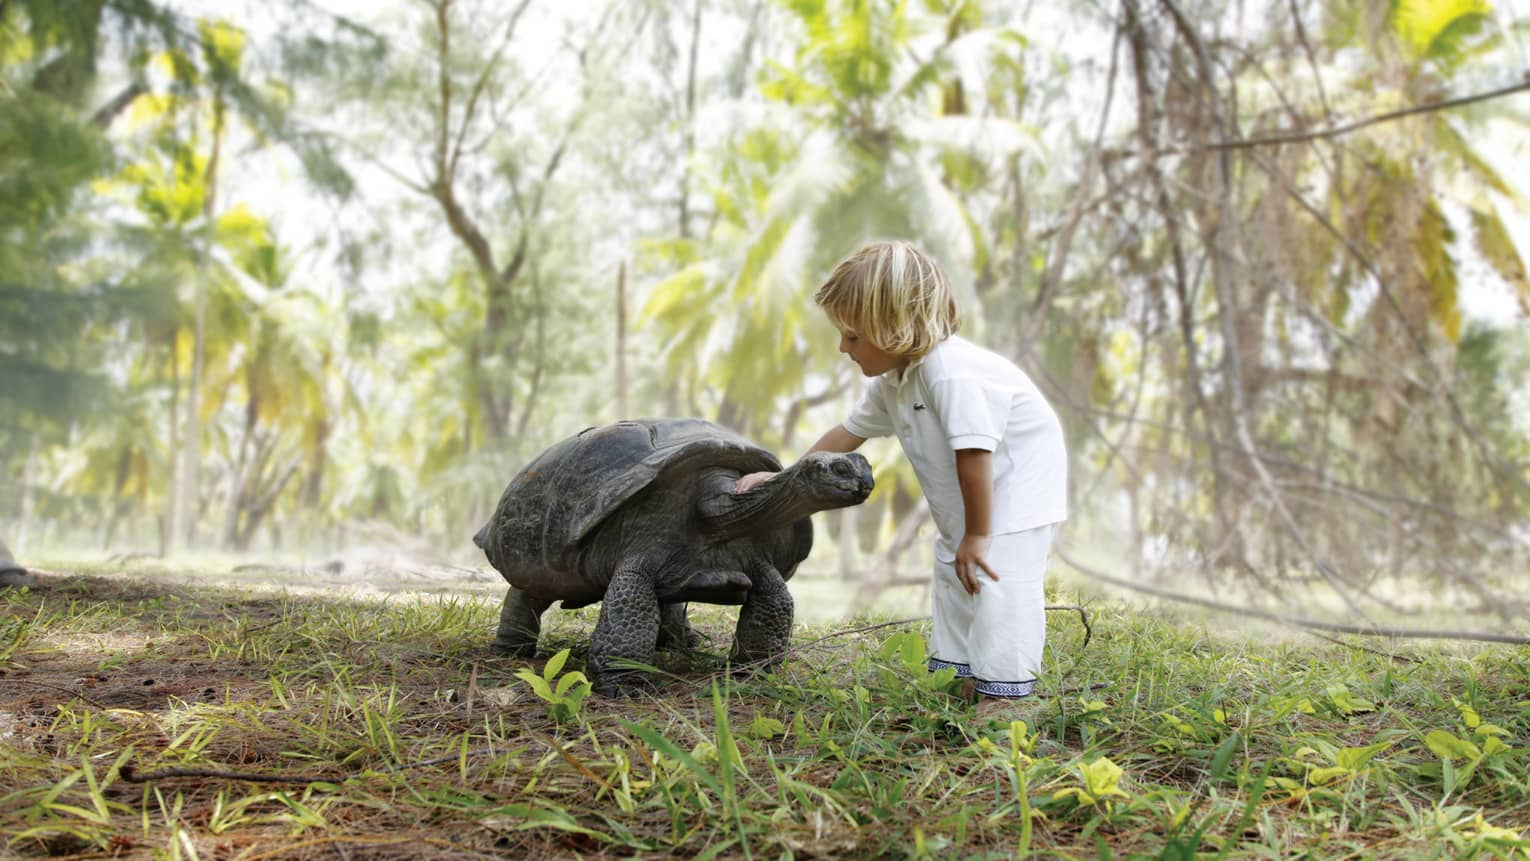 Young child in white shirt and pants pets large tortoise on grass